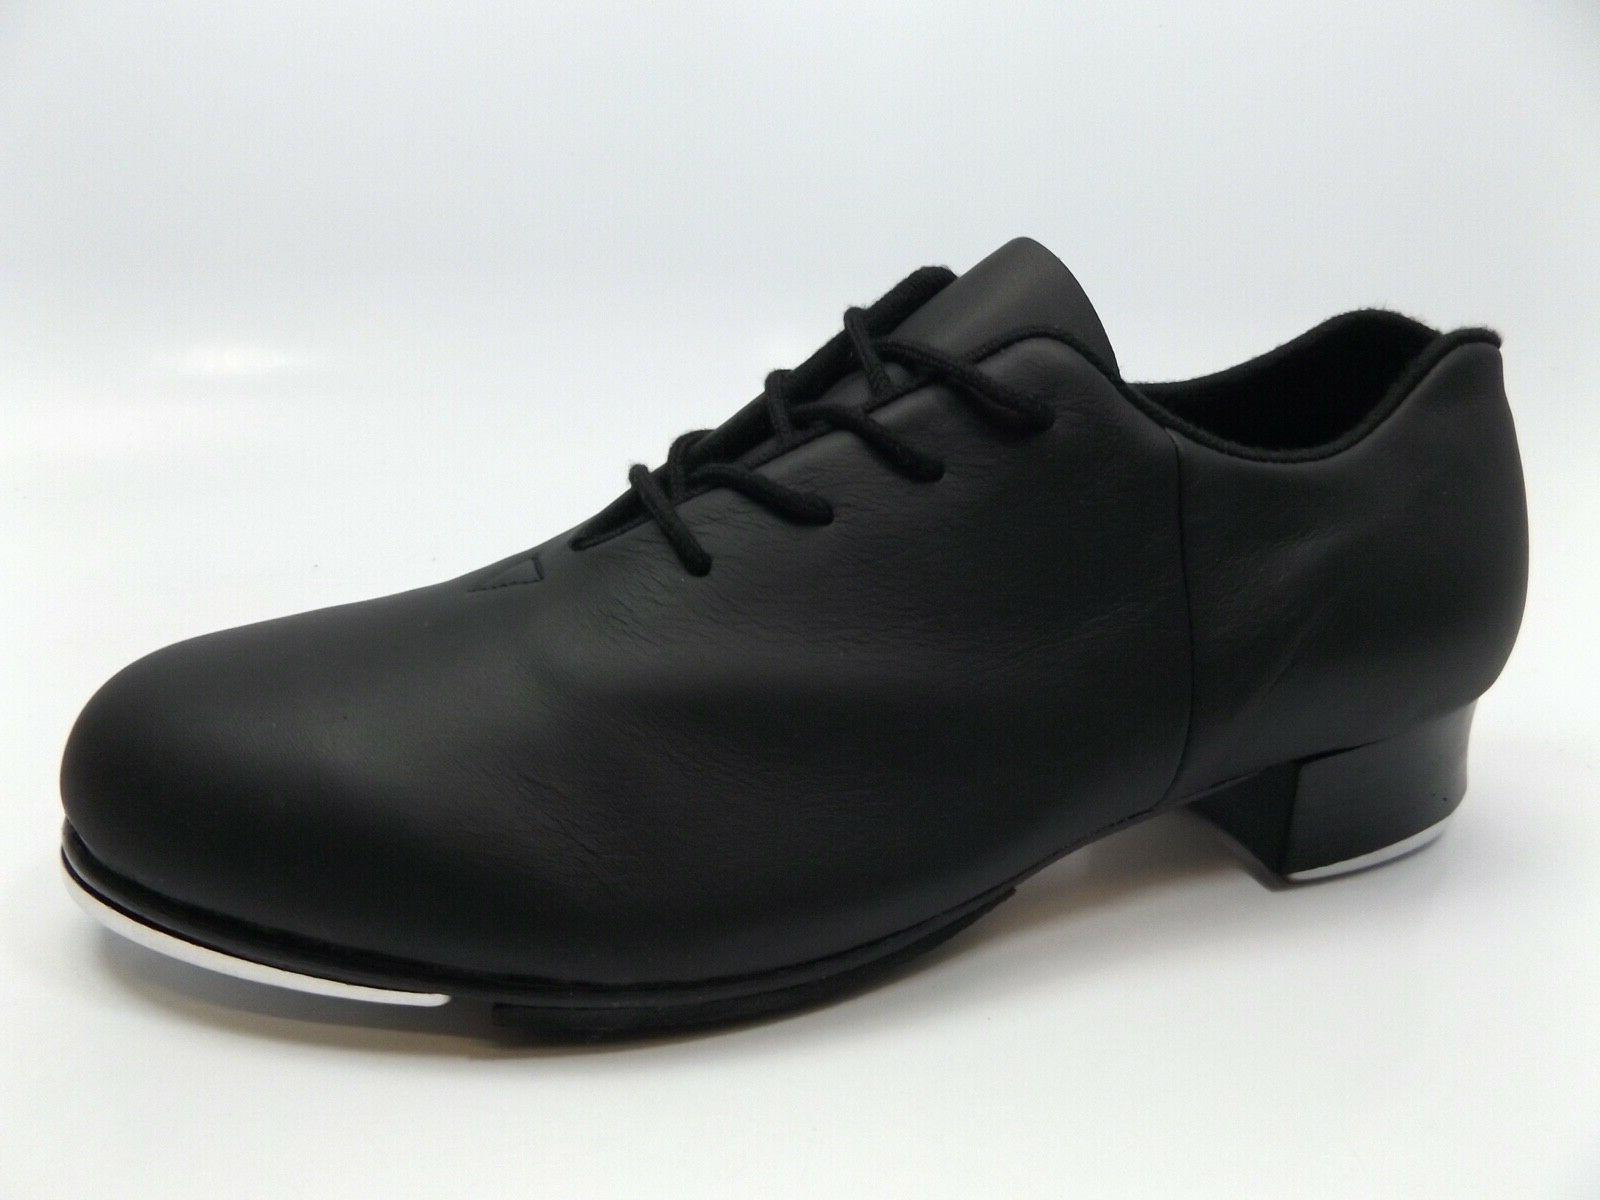 New Black Audeo Tap Leather Oxford tap Shoes 8.5 14262